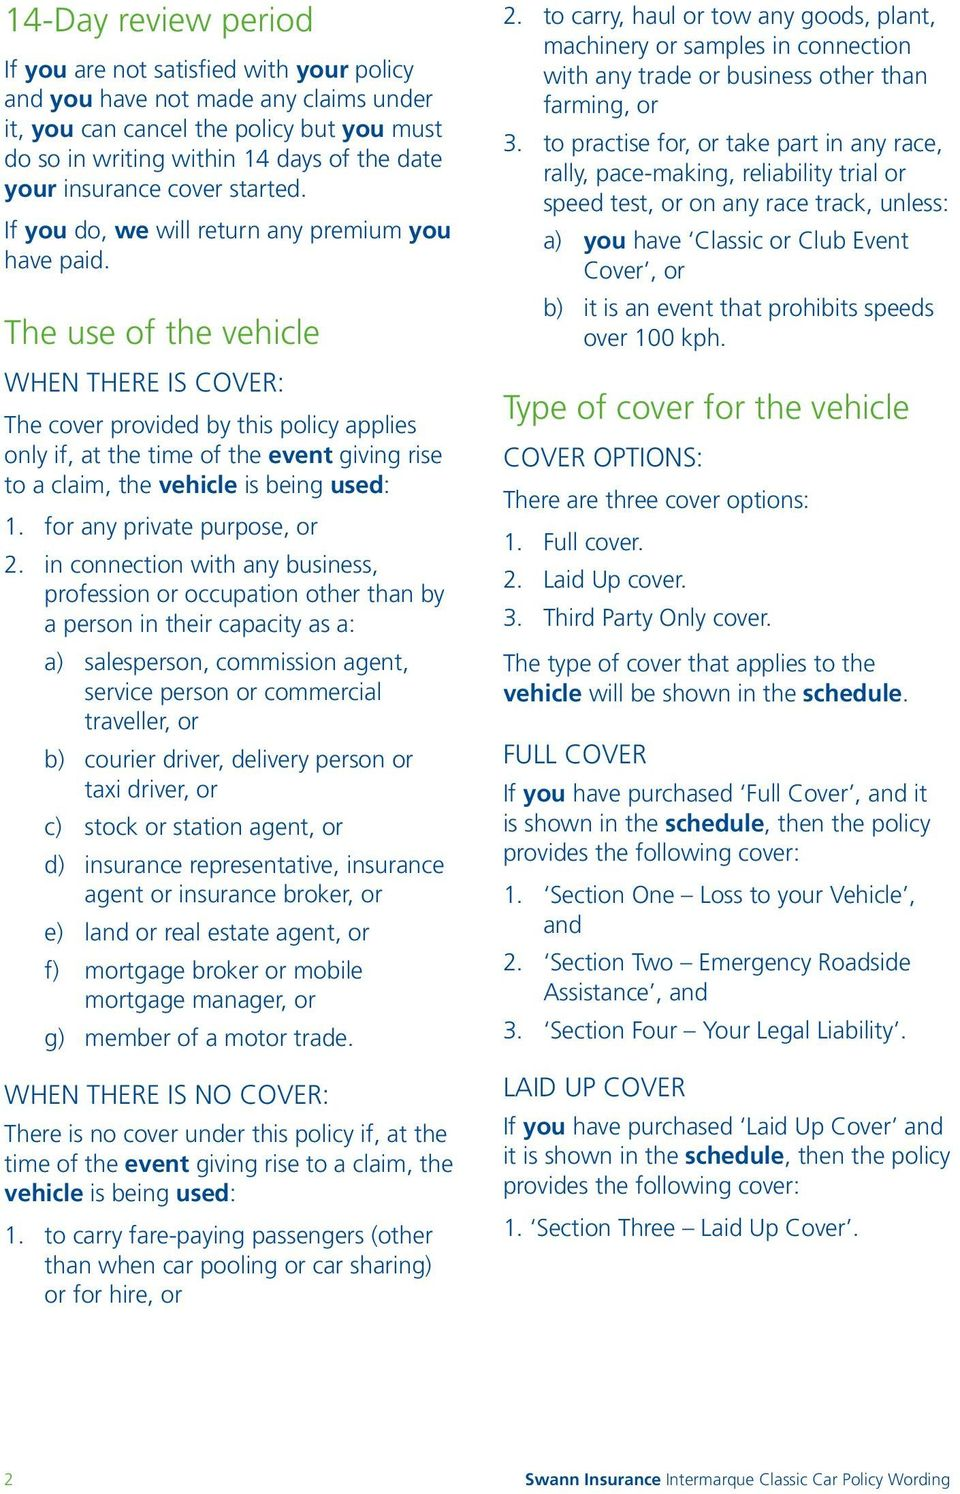 The use of the vehicle When there is cover: The cover provided by this policy applies only if, at the time of the event giving rise to a claim, the vehicle is being used: 1.